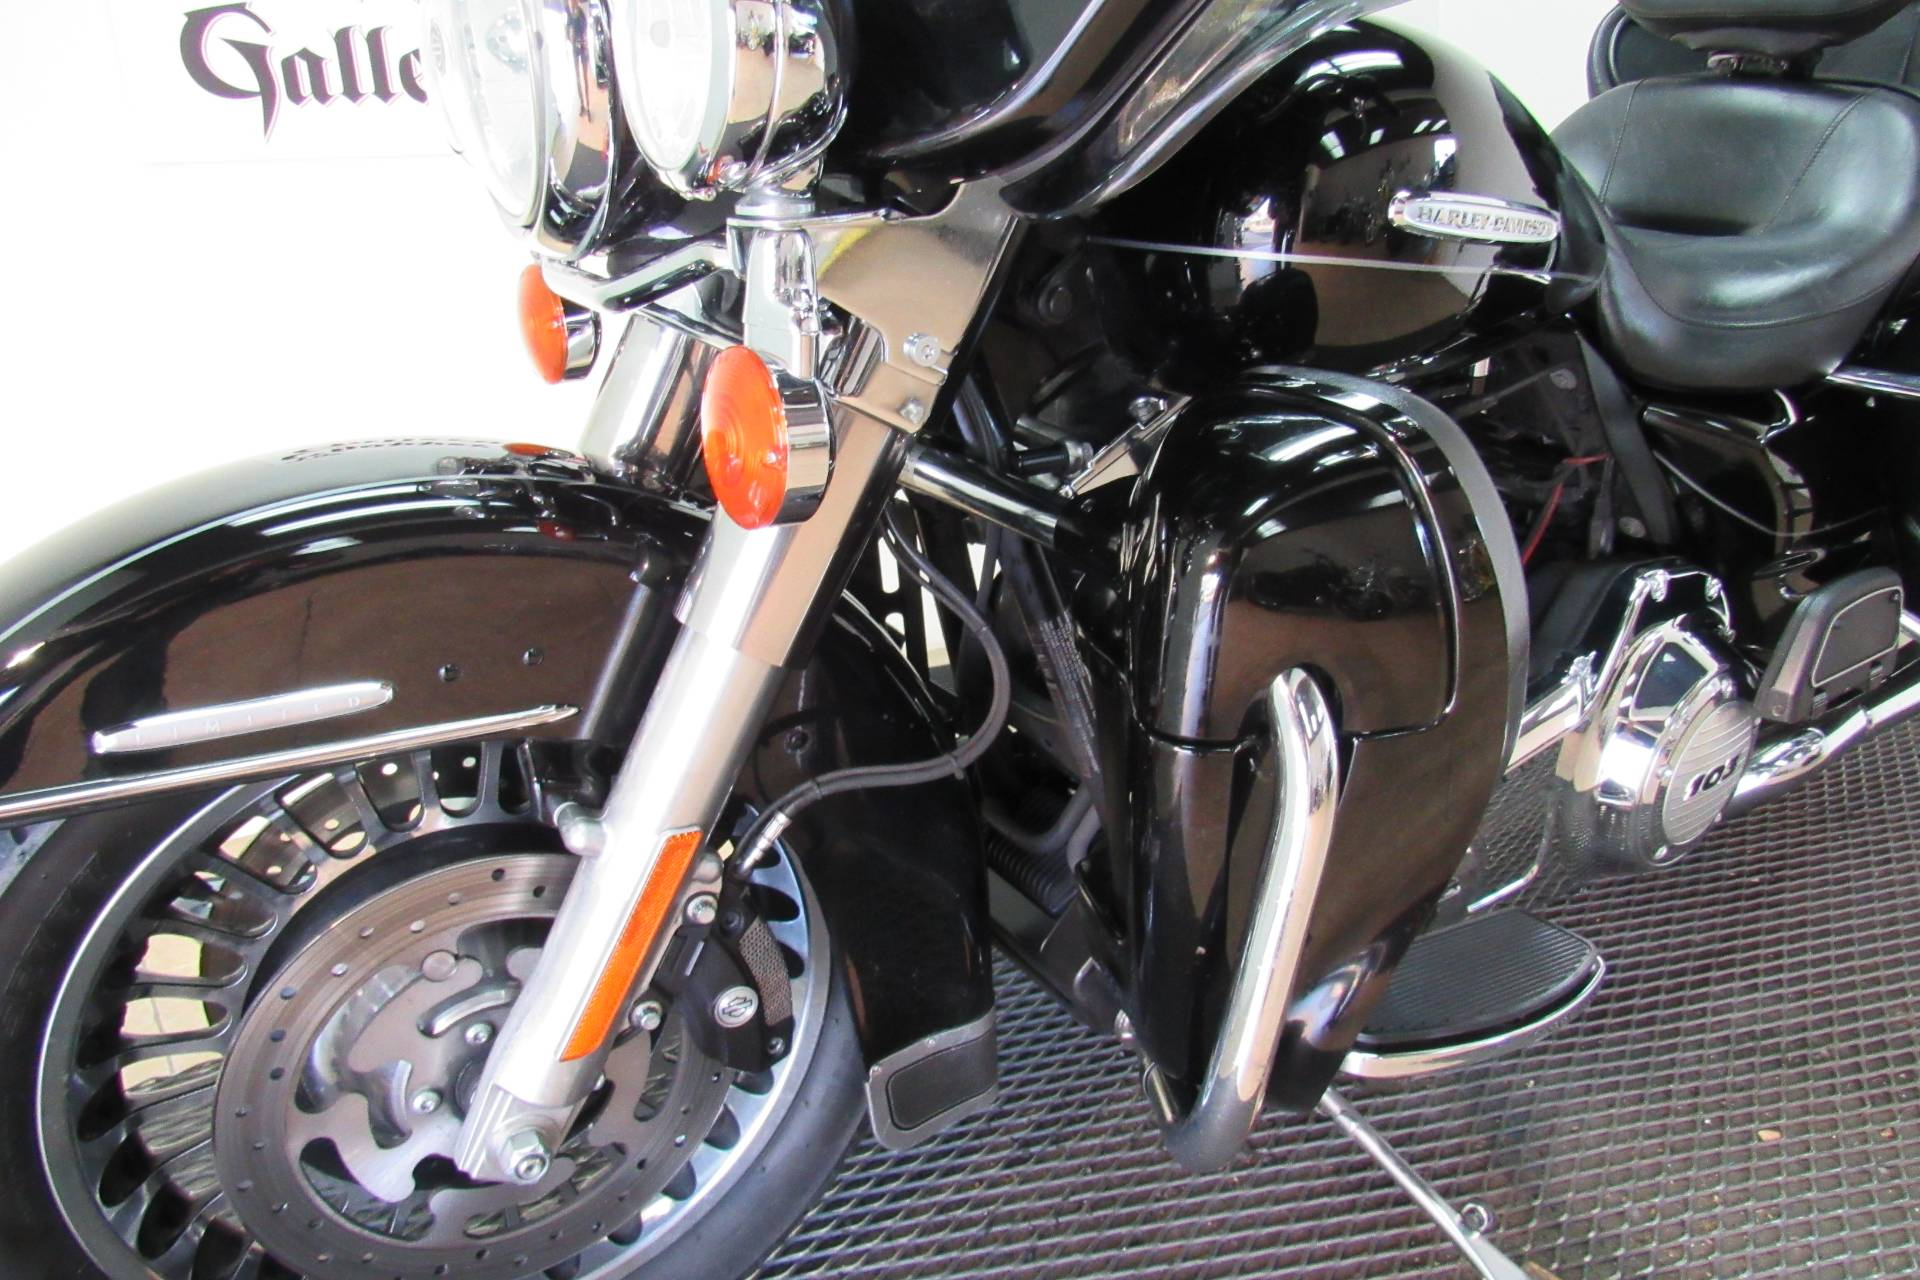 2011 Harley-Davidson Electra Glide® Ultra Limited in Temecula, California - Photo 27